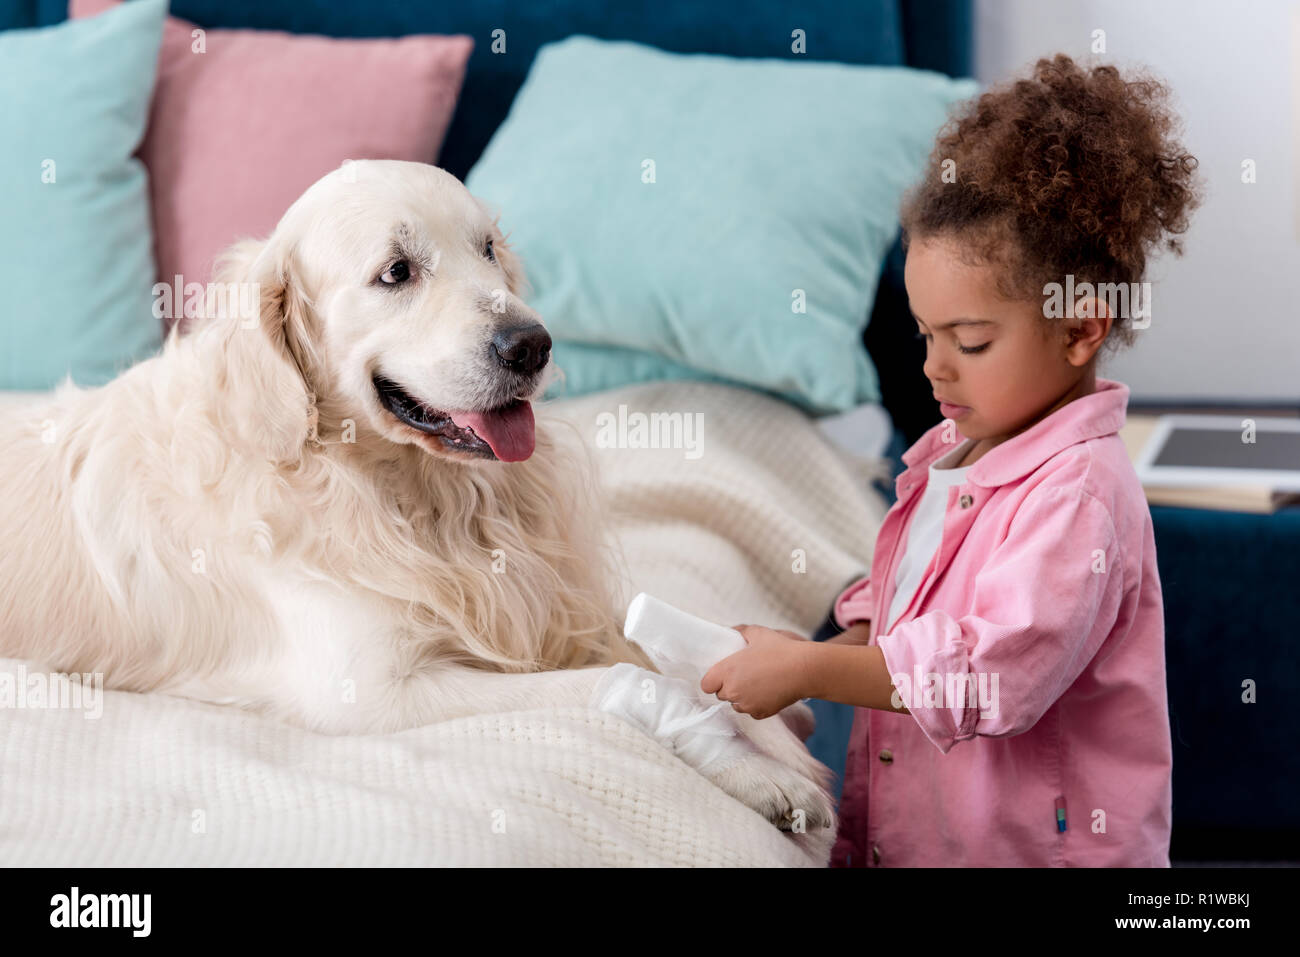 Cute african american child bandages paw dog - Stock Image